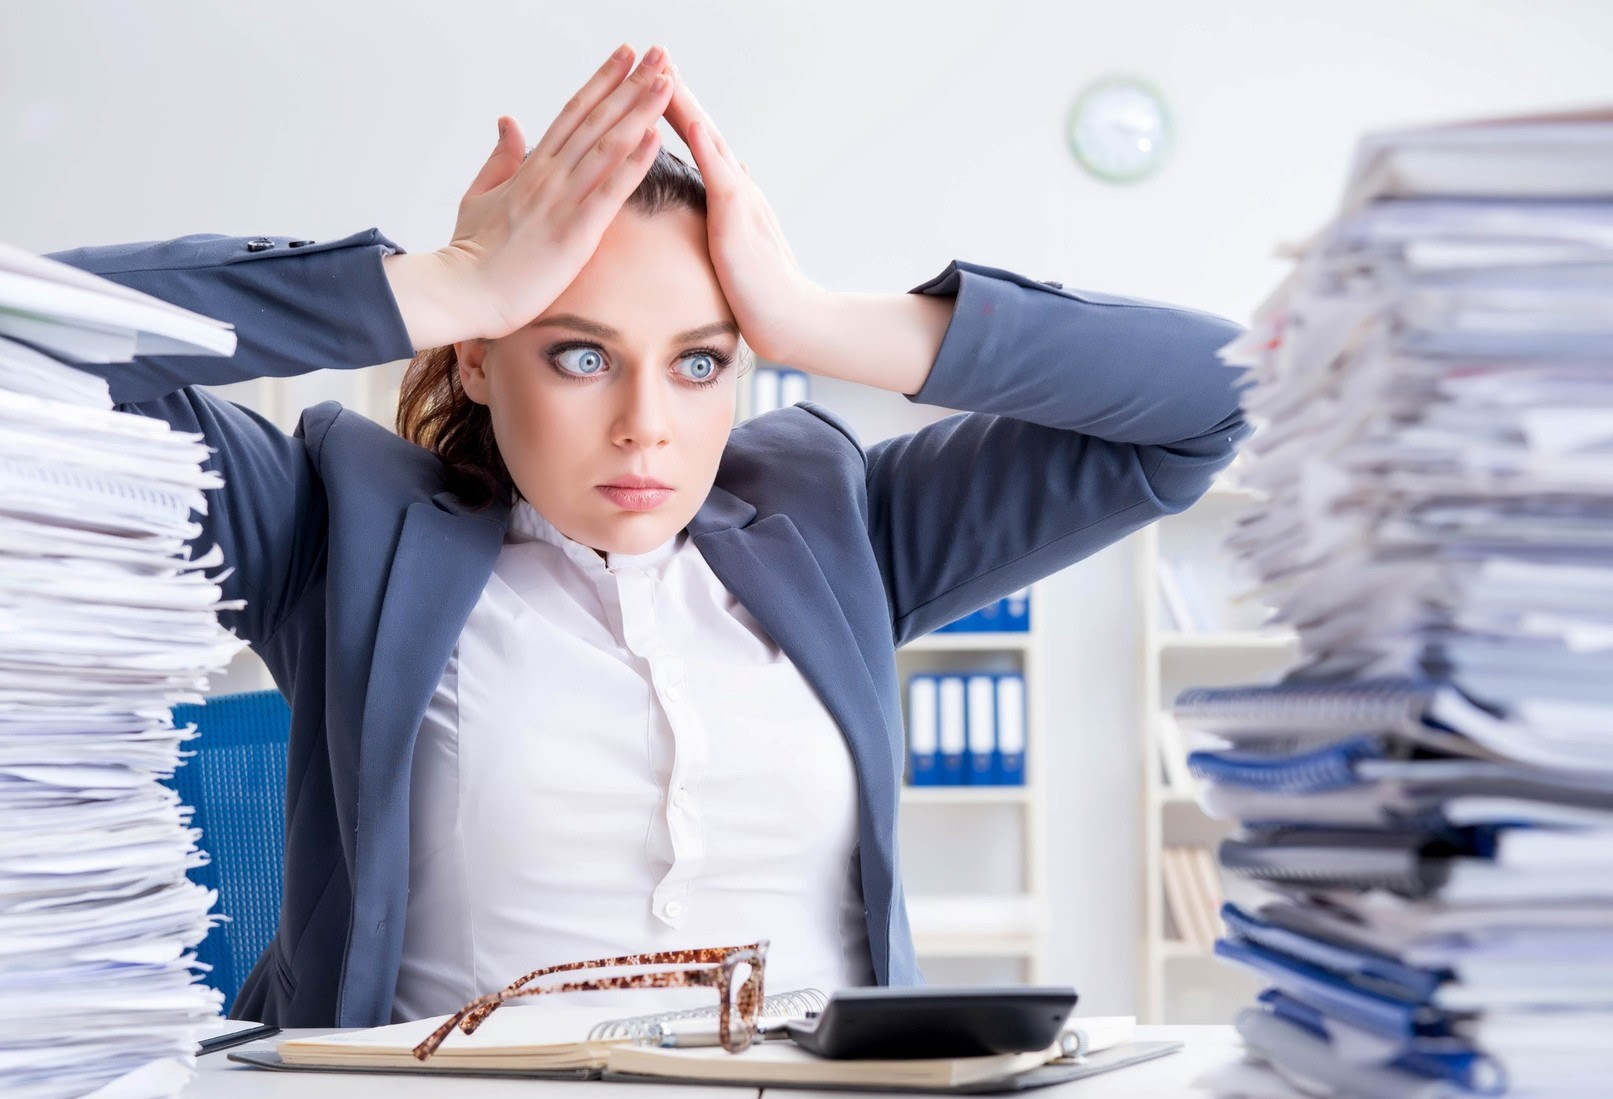 Drowning in an endless backlog of tasks? This ONE habit will massively improve your productivity